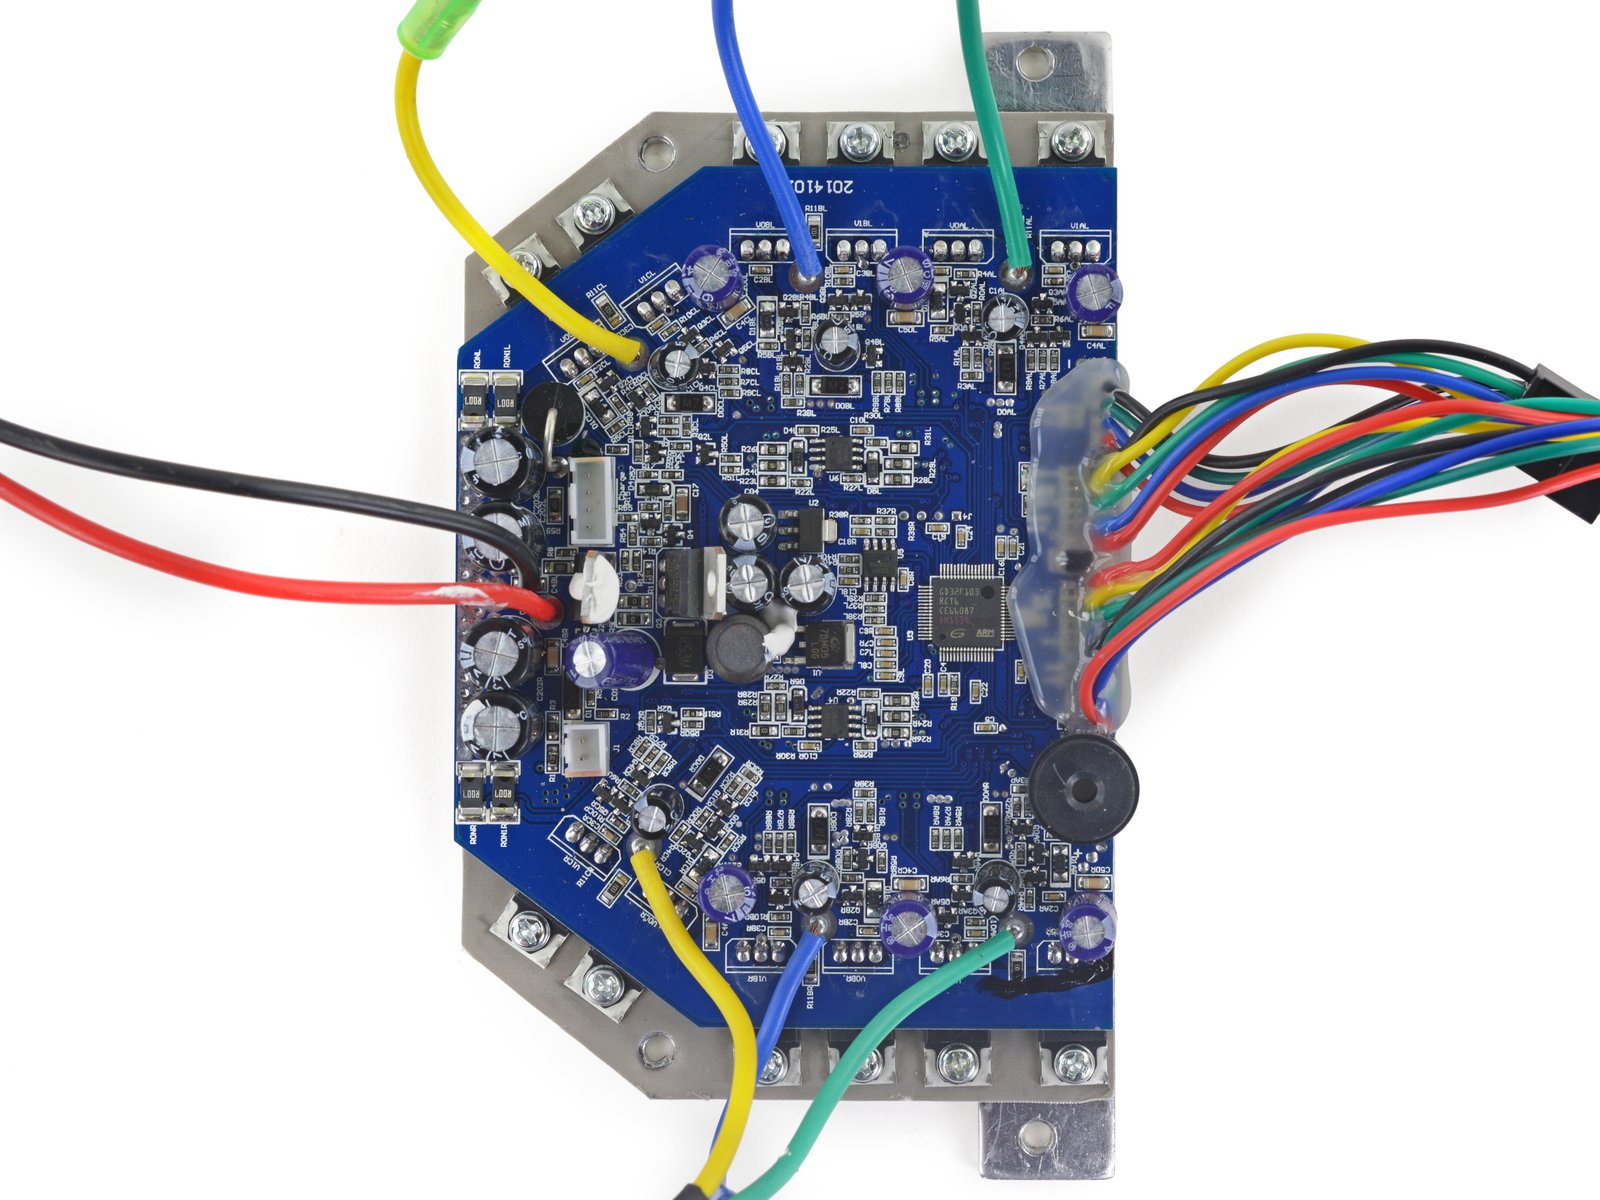 Swagboard Teardown What Makes A Safe Hoverboard Ifixit Or This If You Secured It With Hot Glue And Used Circuit Board Identified By Ken The Main Focus Of Control Is Six Half H Drivers Which Drive Two 3 Phase Motors That Doesnt Make Any Sense To